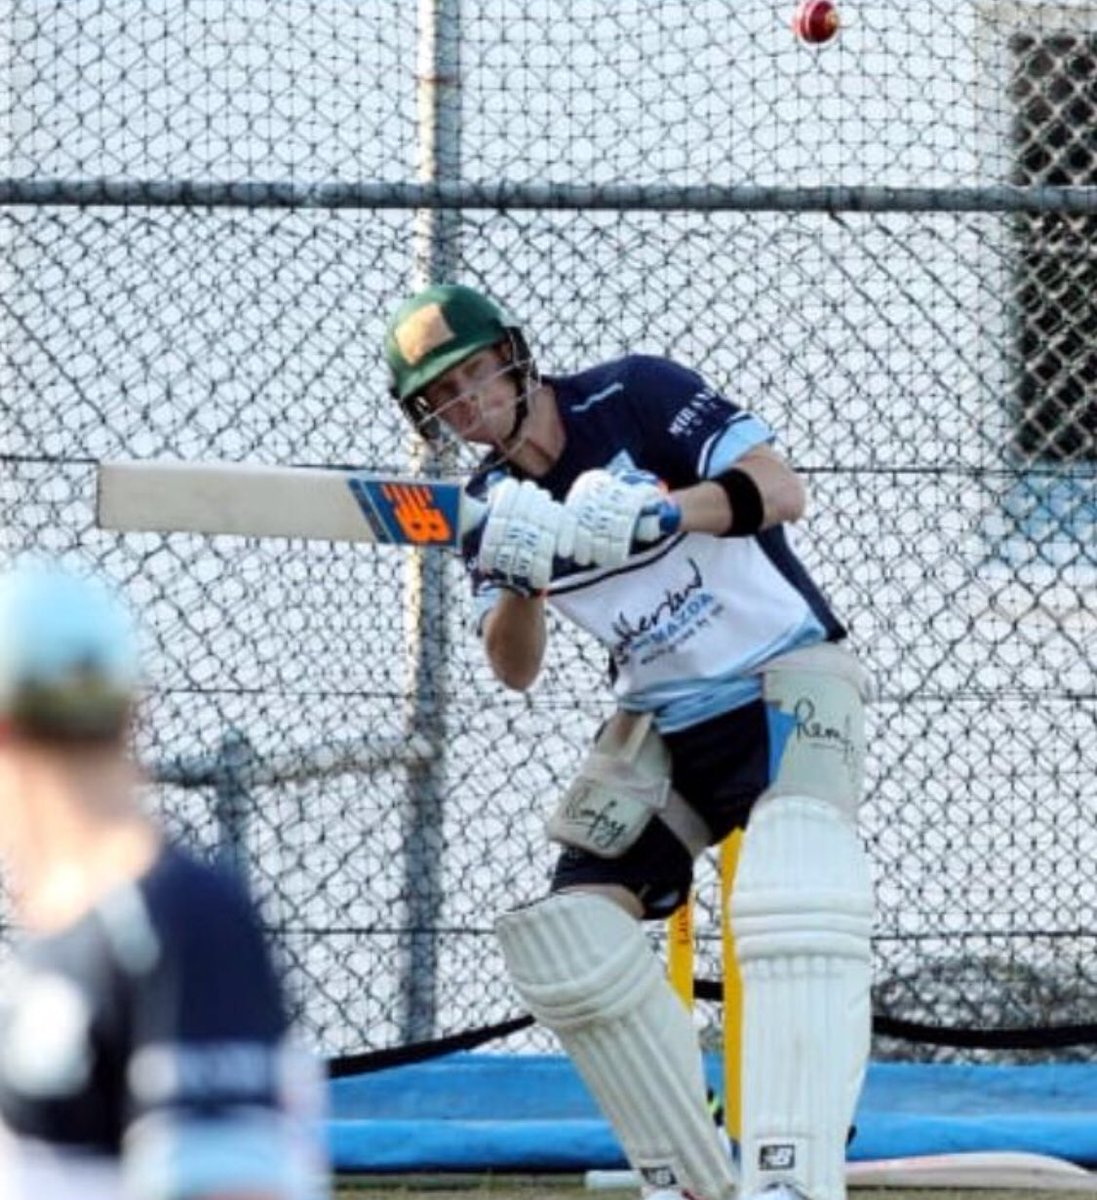 Steve Smith at grade training wearing his Australia lid, getting bounced. This is my new screensaver. <br>http://pic.twitter.com/C0wCHmmndW